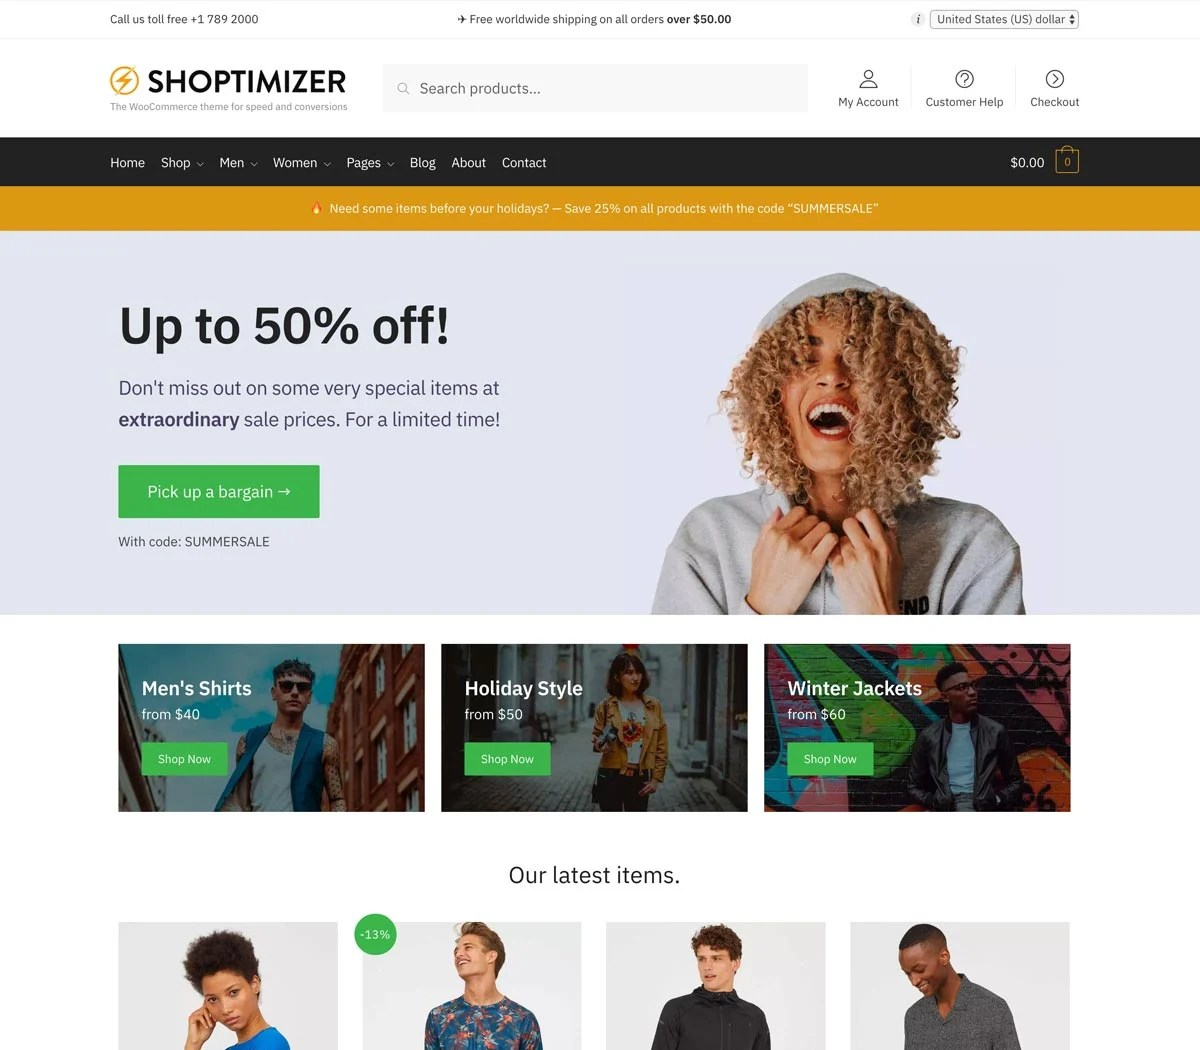 Shoptimizer WooCommerce Theme on Desktop